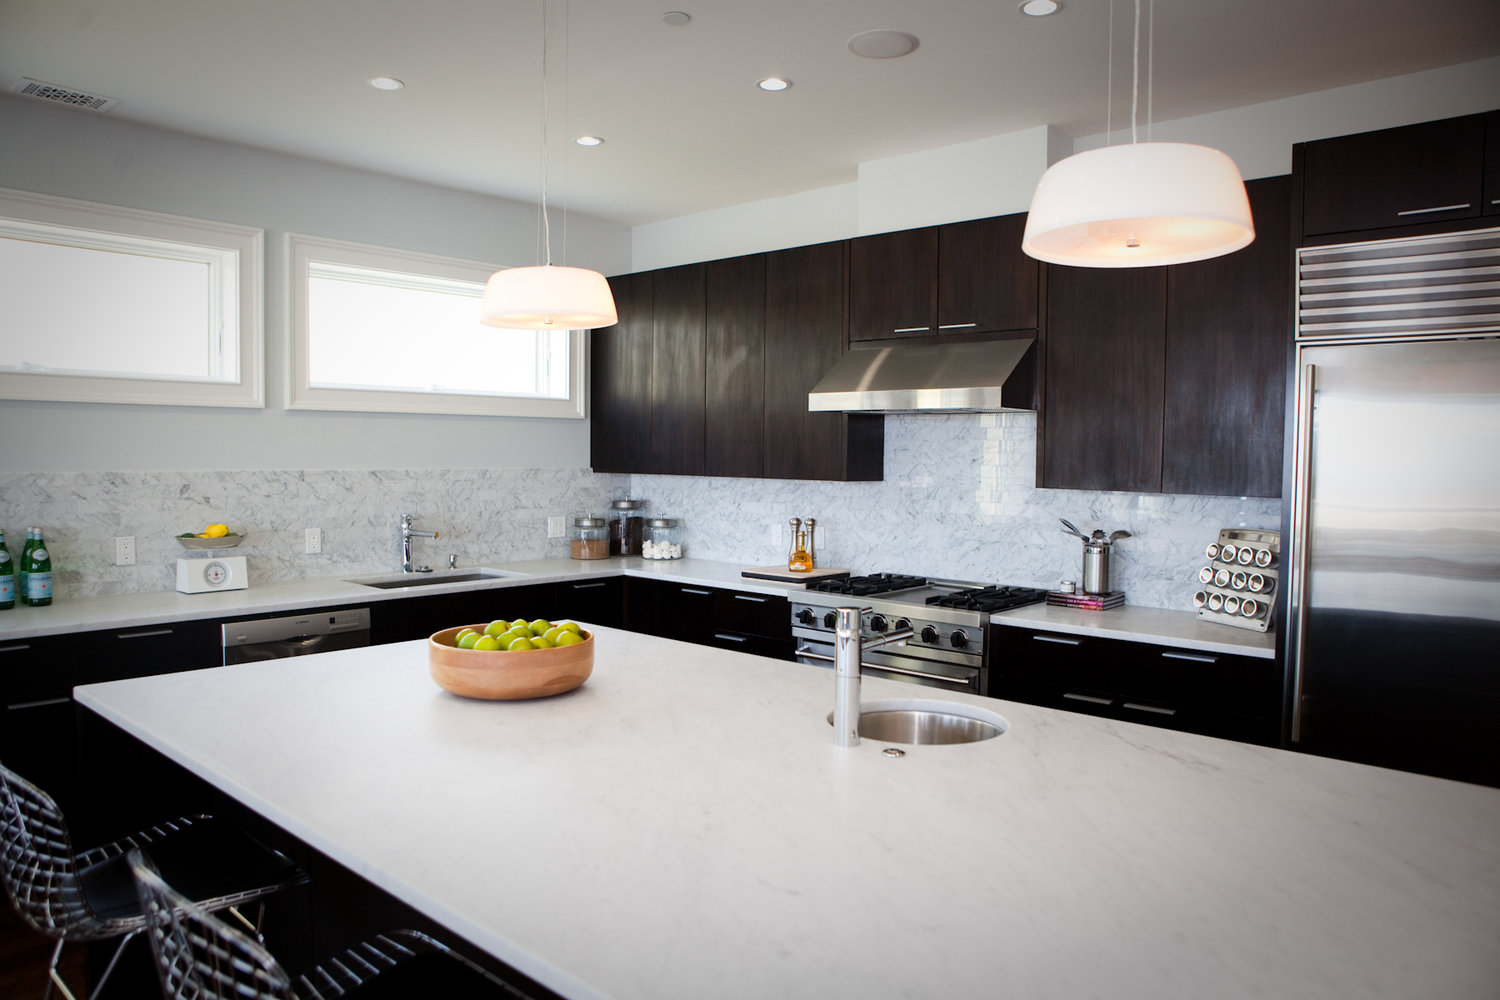 kitchen, barstools, kitchen island, marble counters, tile backsplash, stainless steel appliances, modern kitchen, dark cabinets, polished chrome faucet, kitchen sink, prep sink